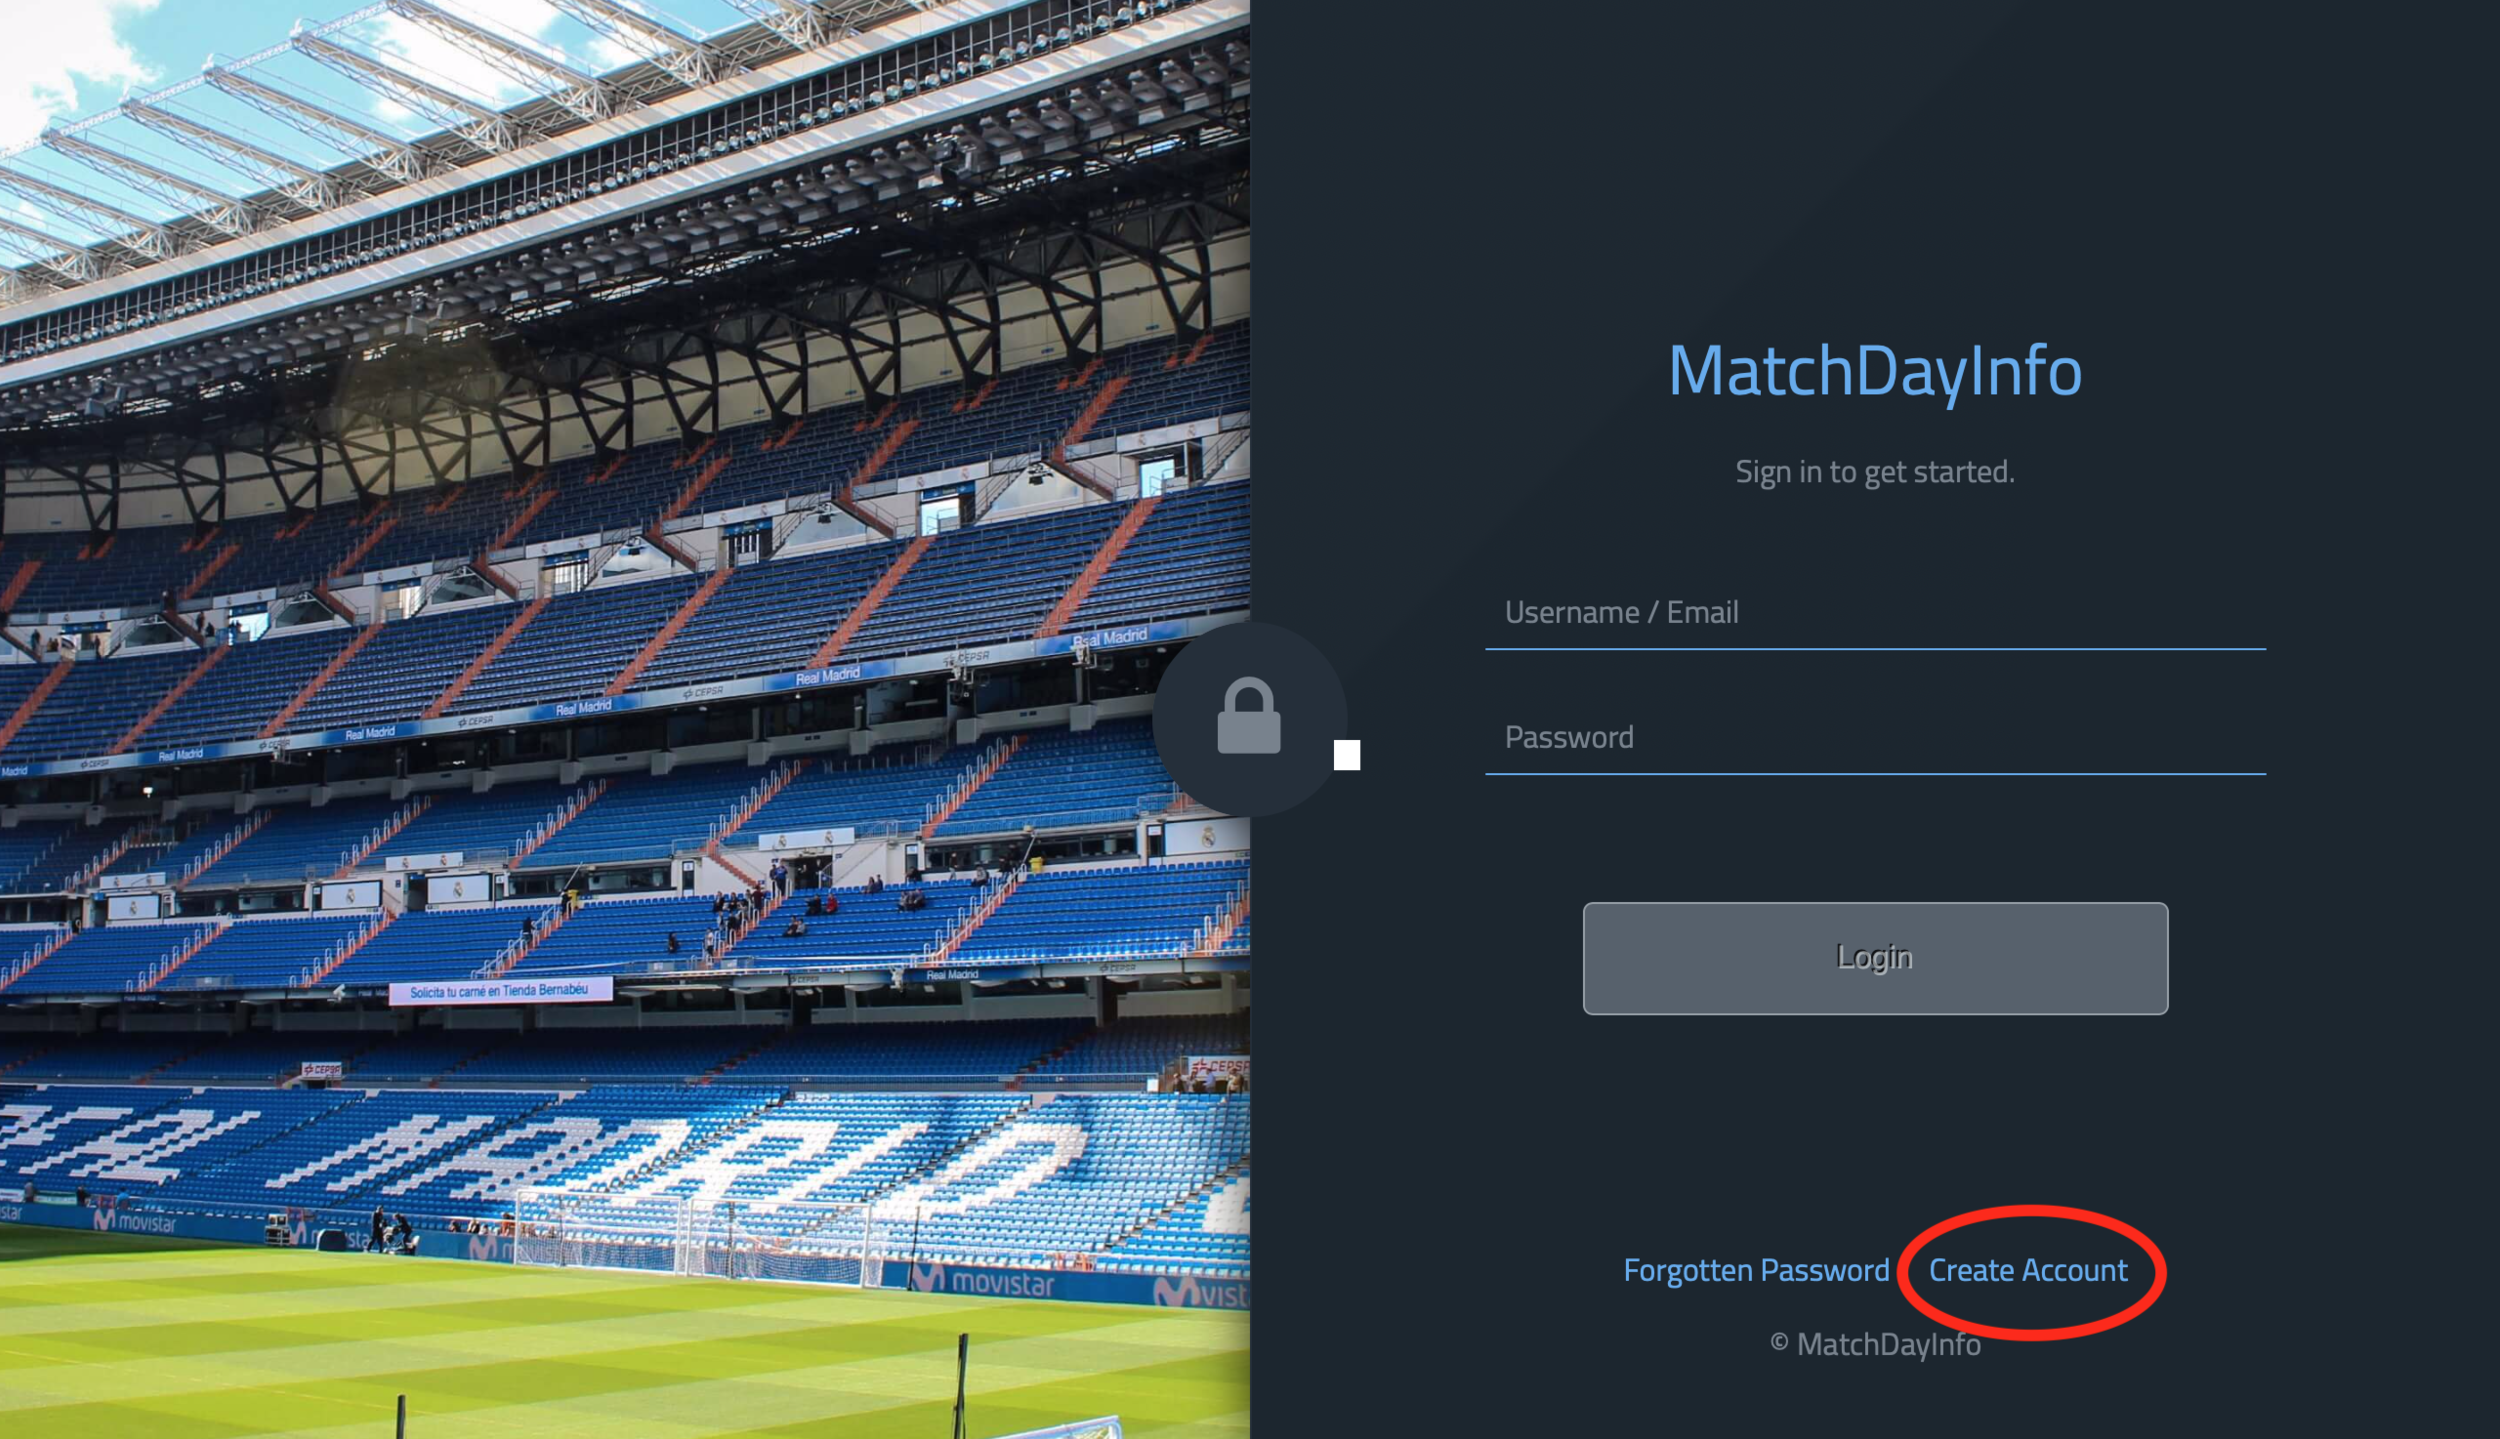 Step 1: Welcome - To find our online dashboard type in app.matchdayinfo.com - this will allow you create an account or to sign in to the MDI dashboard.If you are creating an account, click on the 'Create Account' link at the bottom of the page.